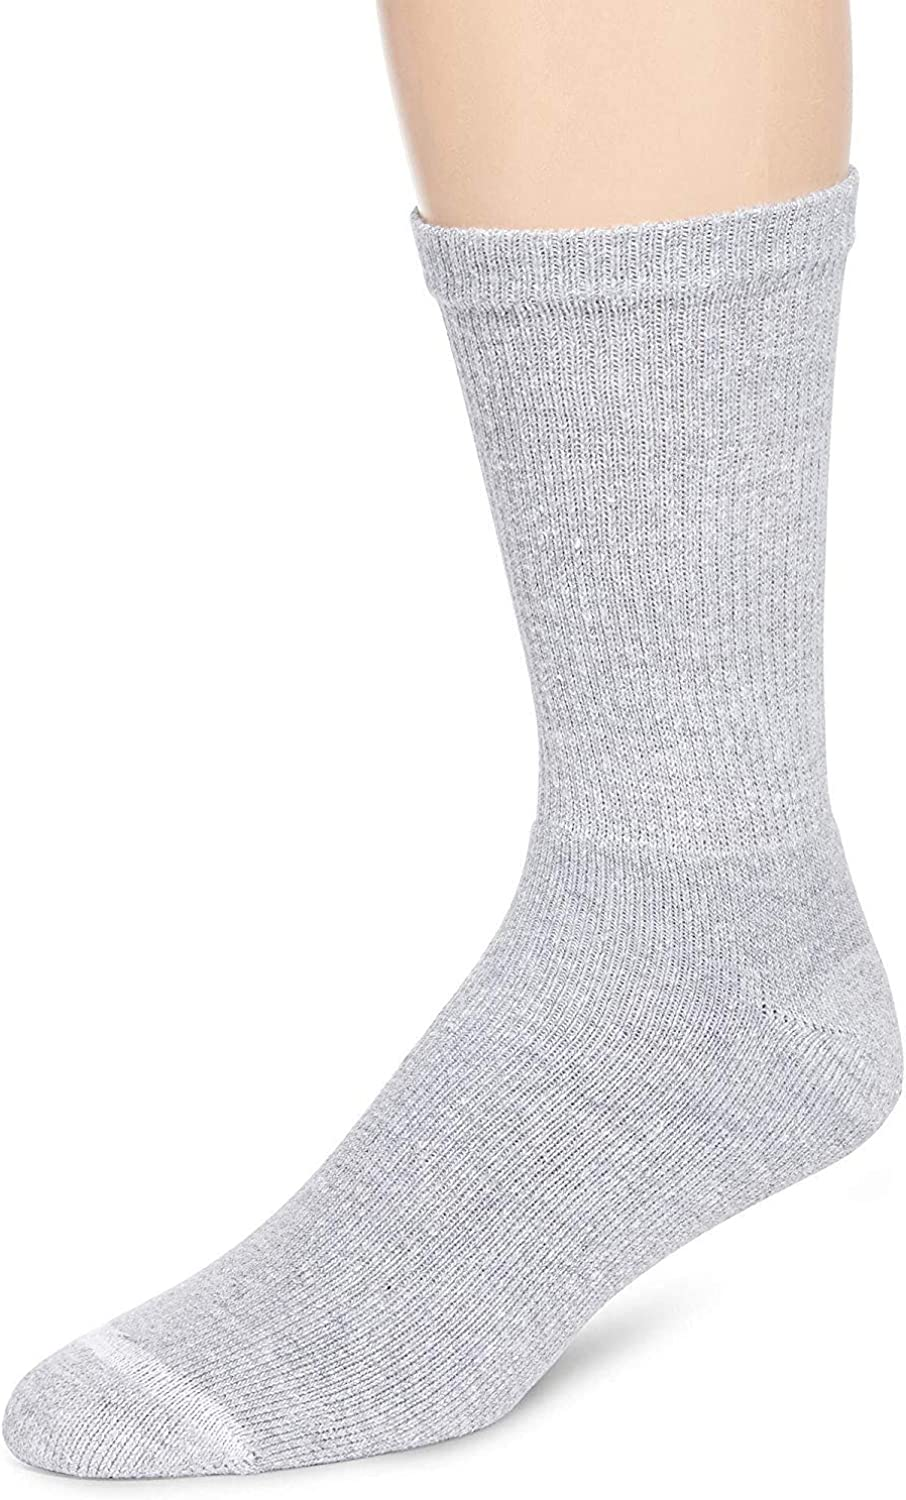 Hanes Crew socks ComfortBlend super soft cotton, Shoe Size 6-12, Pack of 6 Pairs